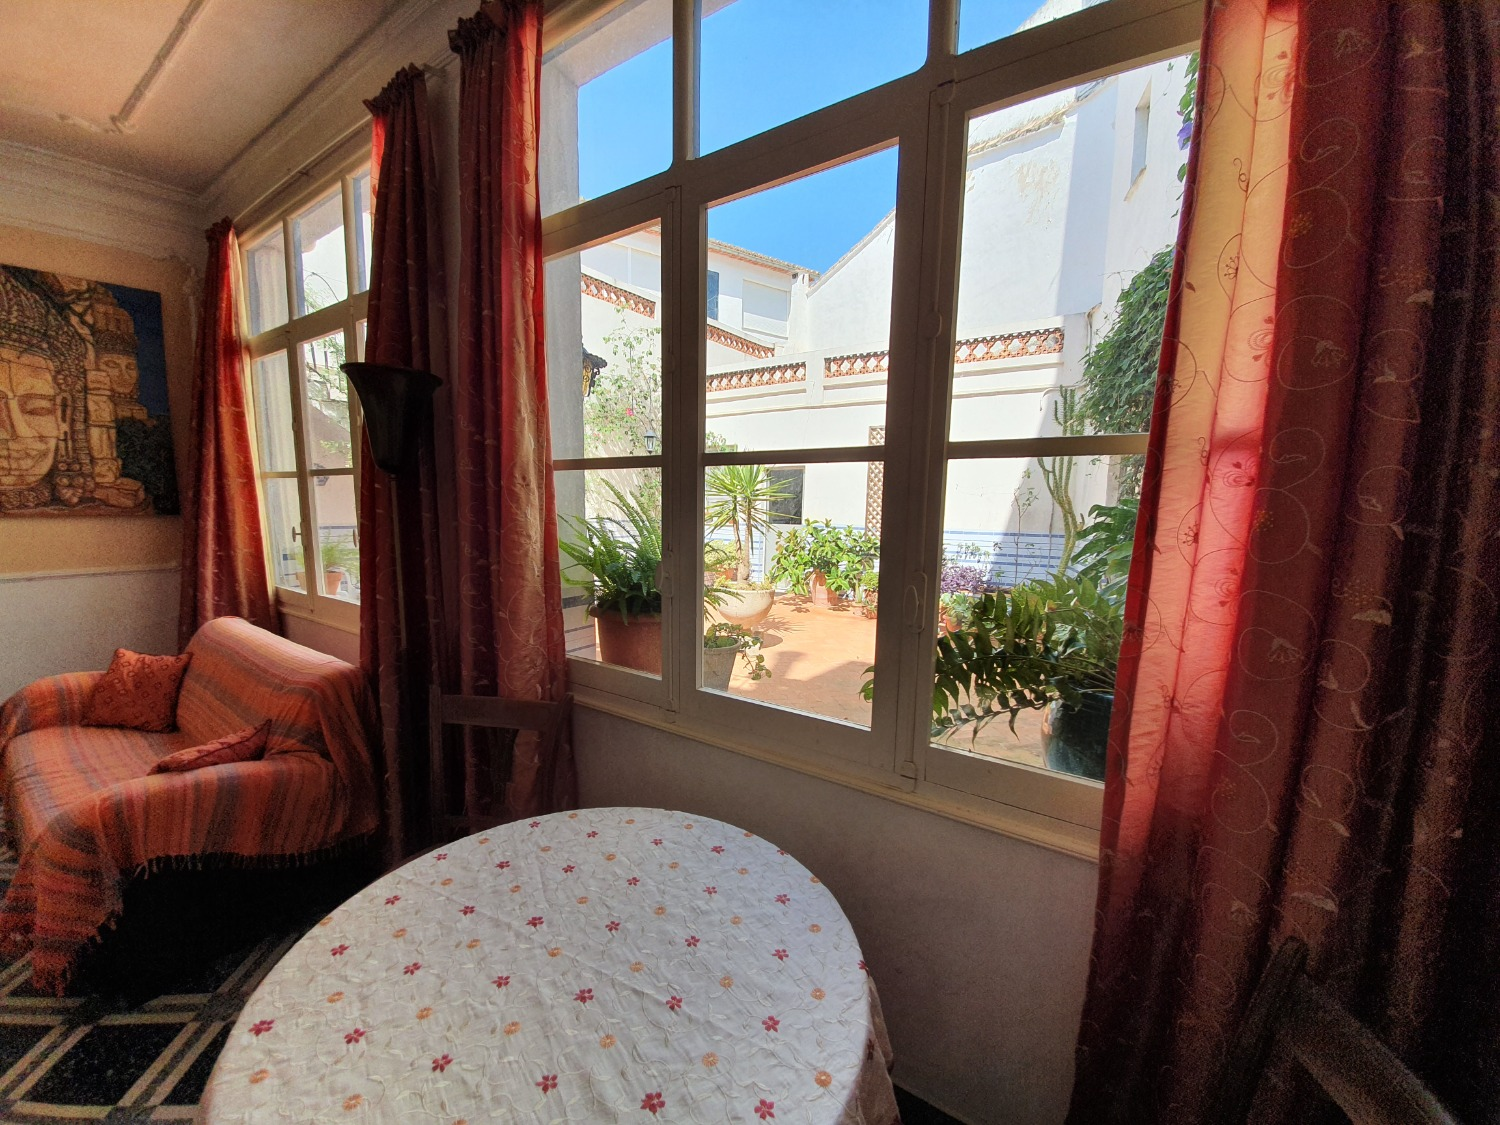 House for sale in Villalonga